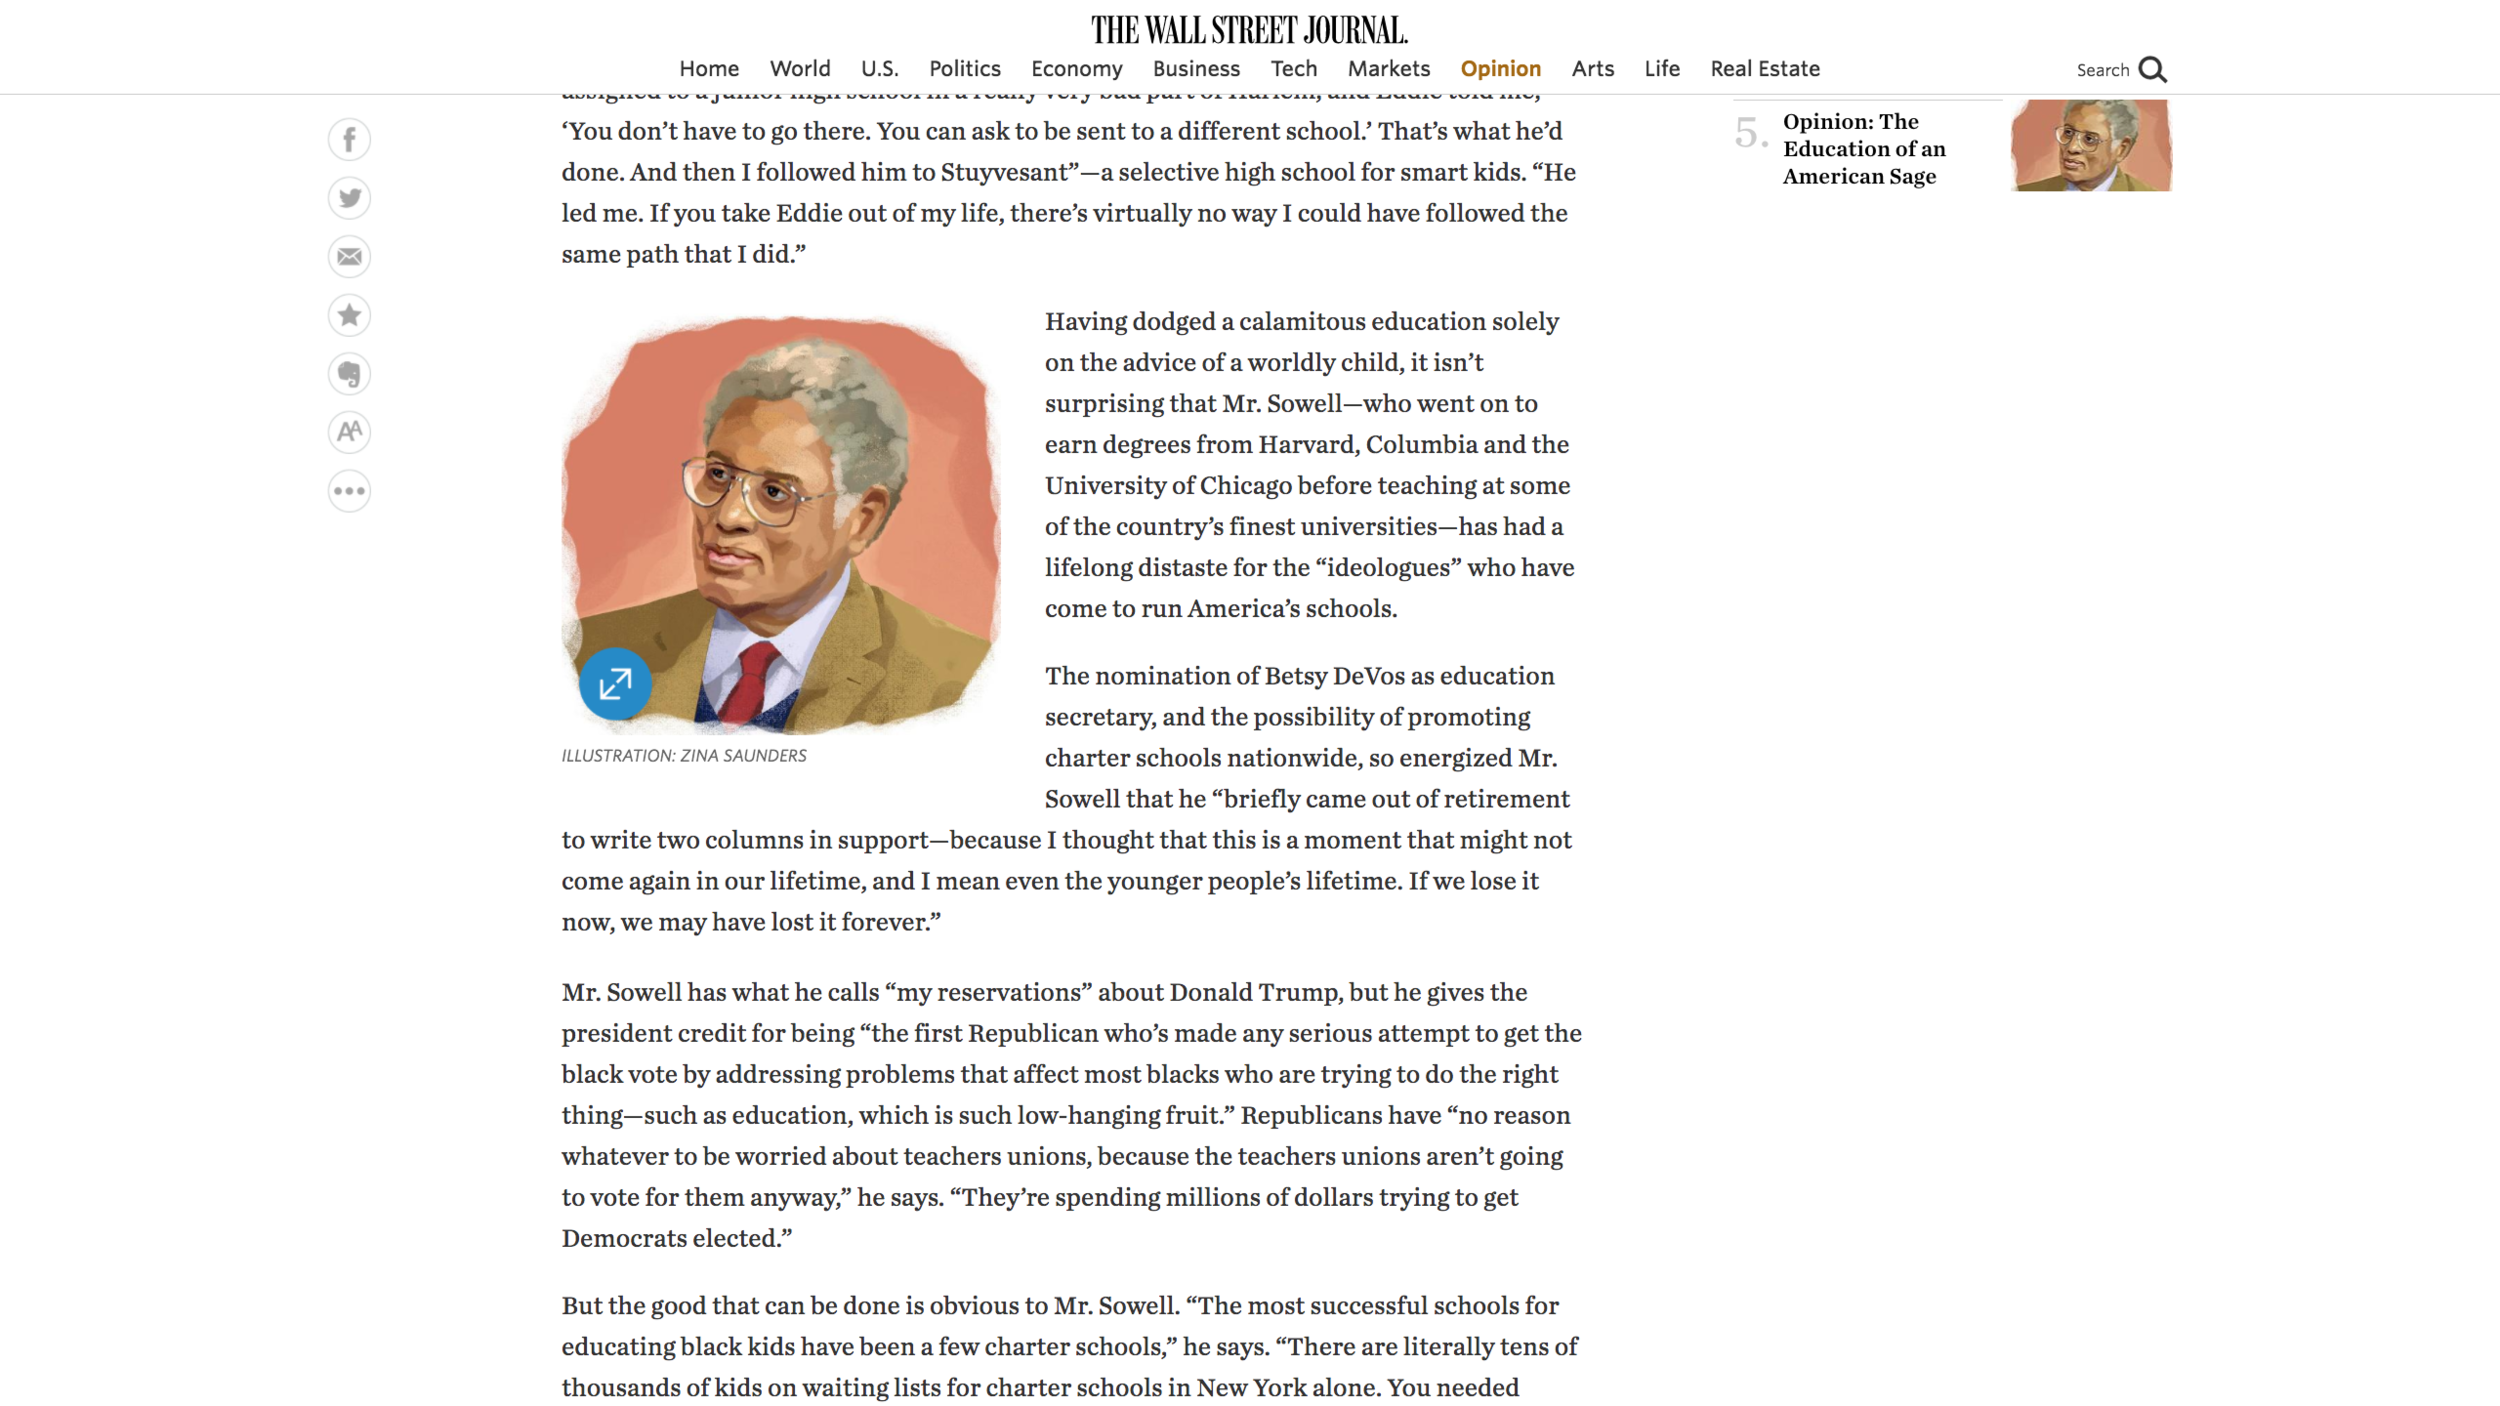 """Link to Tunku Varadarajan's interview of Thomas Sowell for the Wall Street Journal: """"The Education of an American Sage"""""""